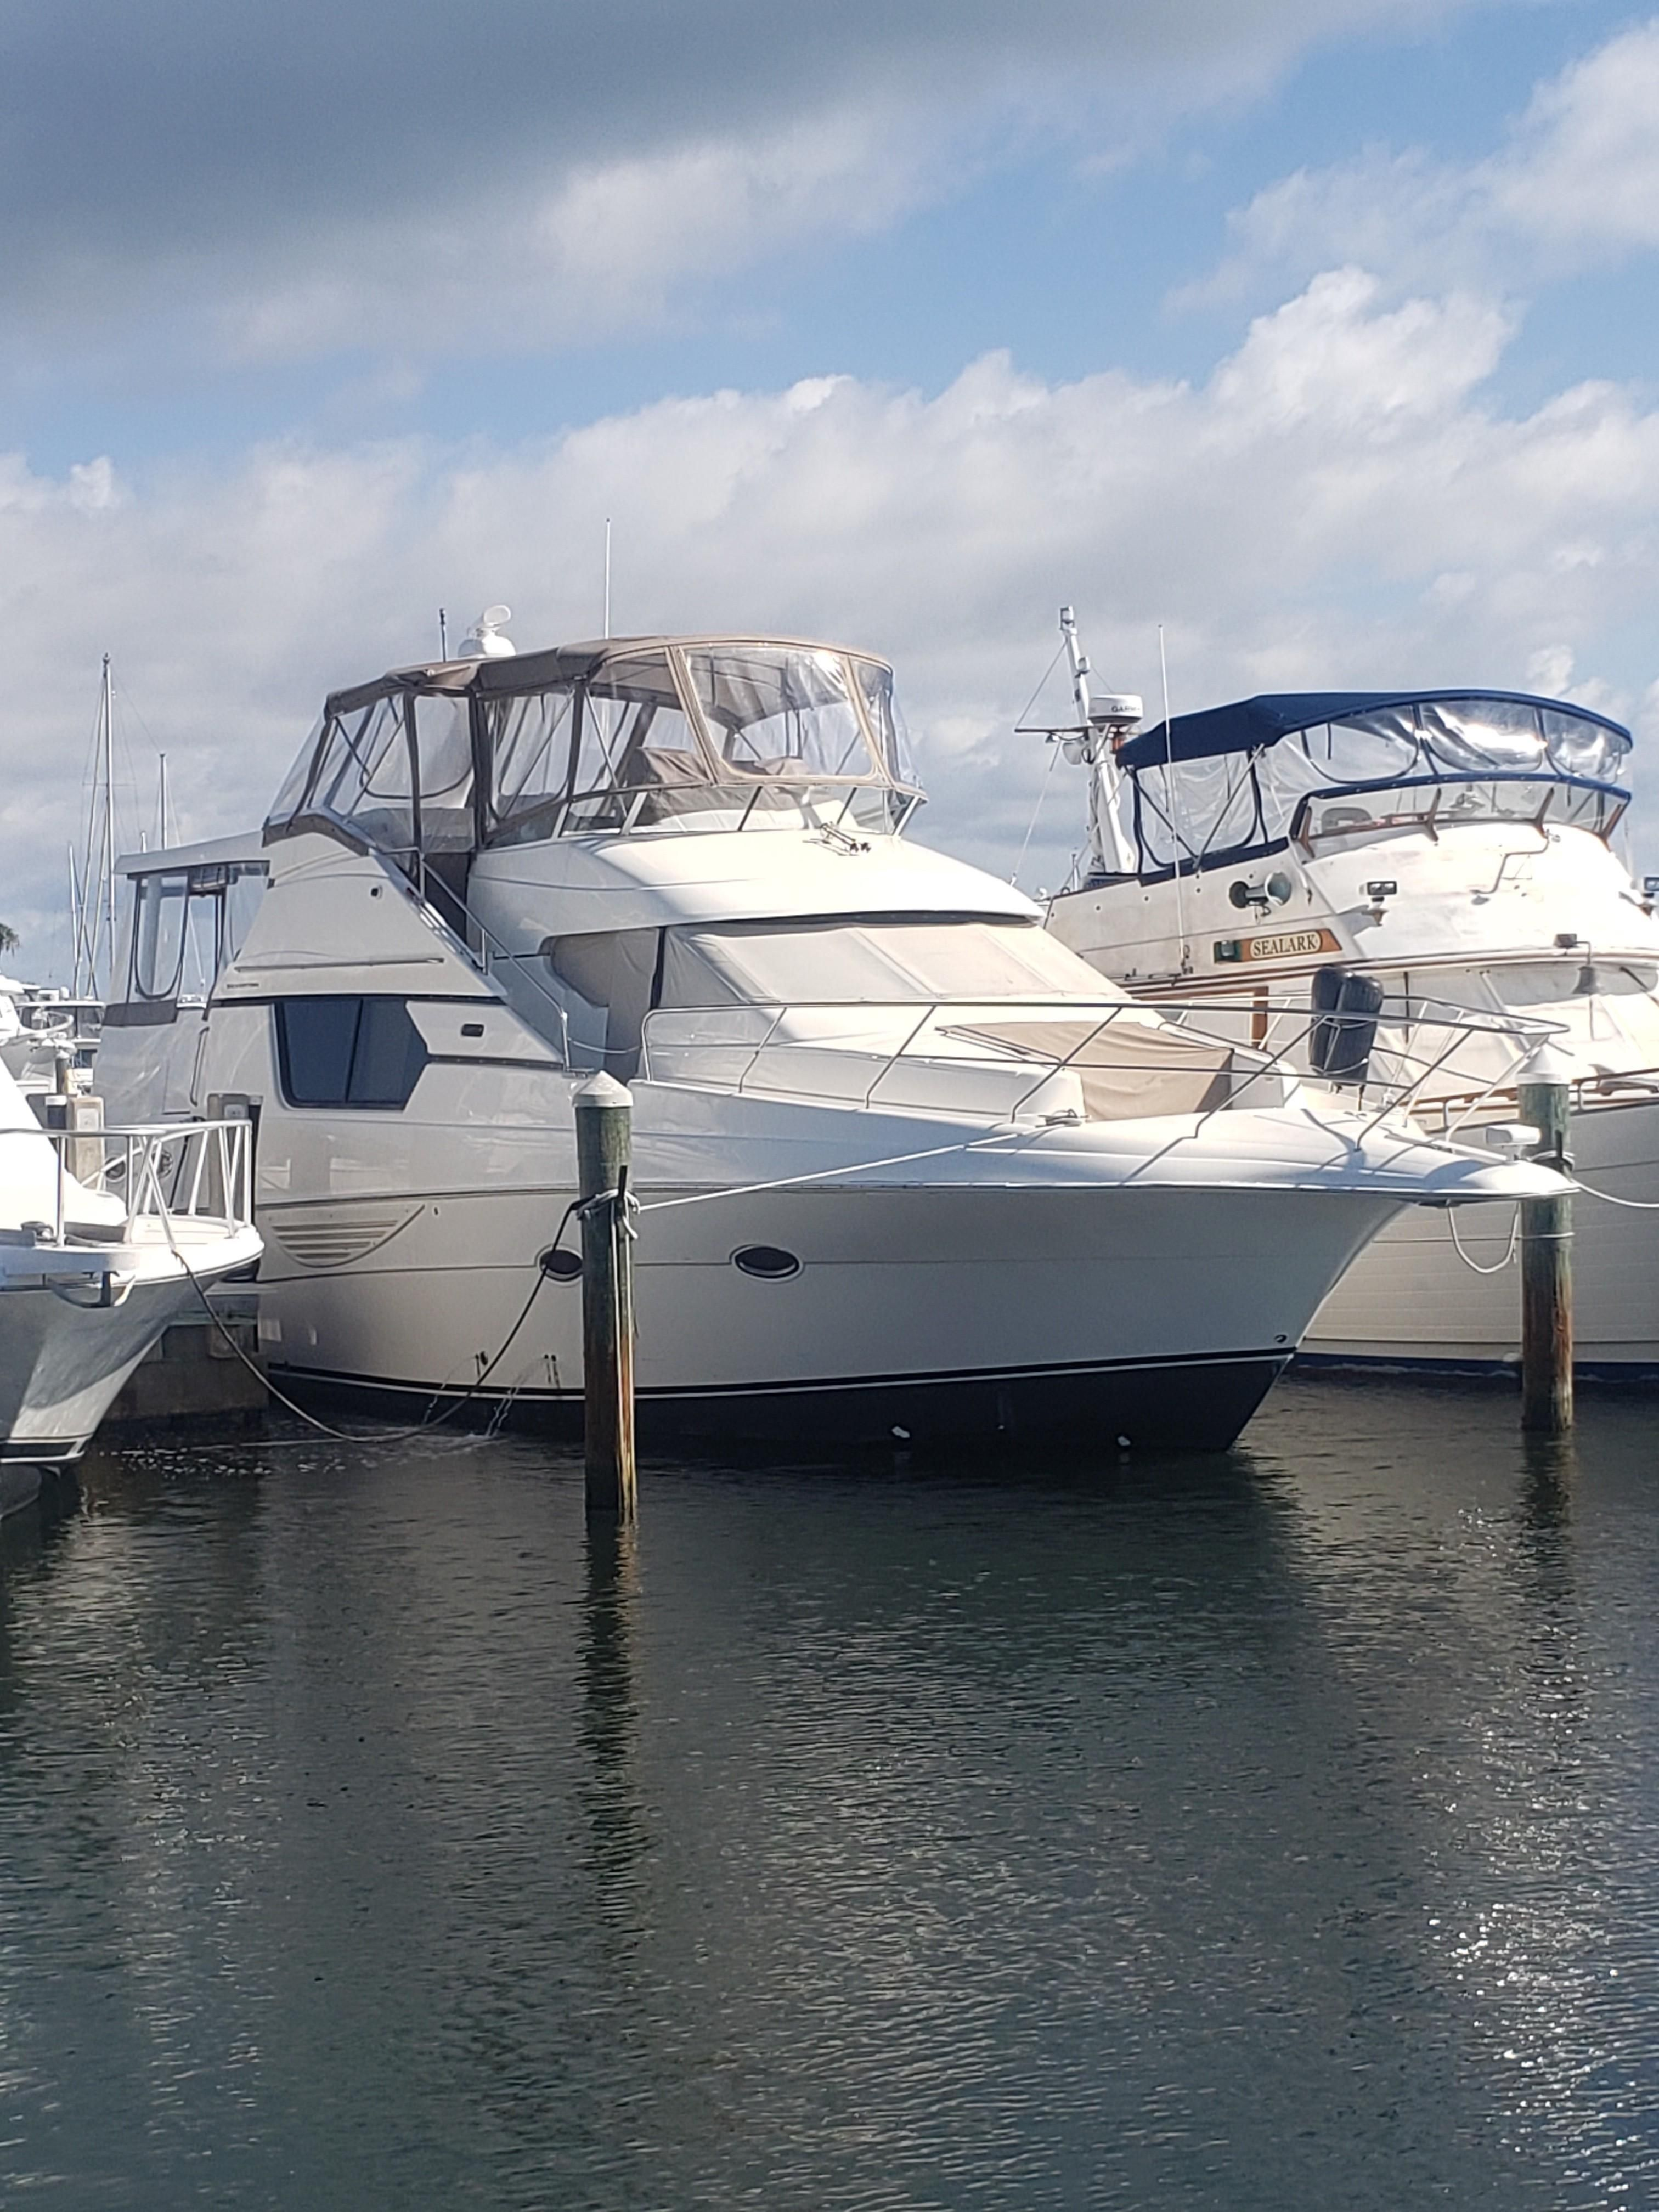 Big Ships Engine Rooms: 2003 Silverton 453 Motor Yacht Motor Yacht For Sale